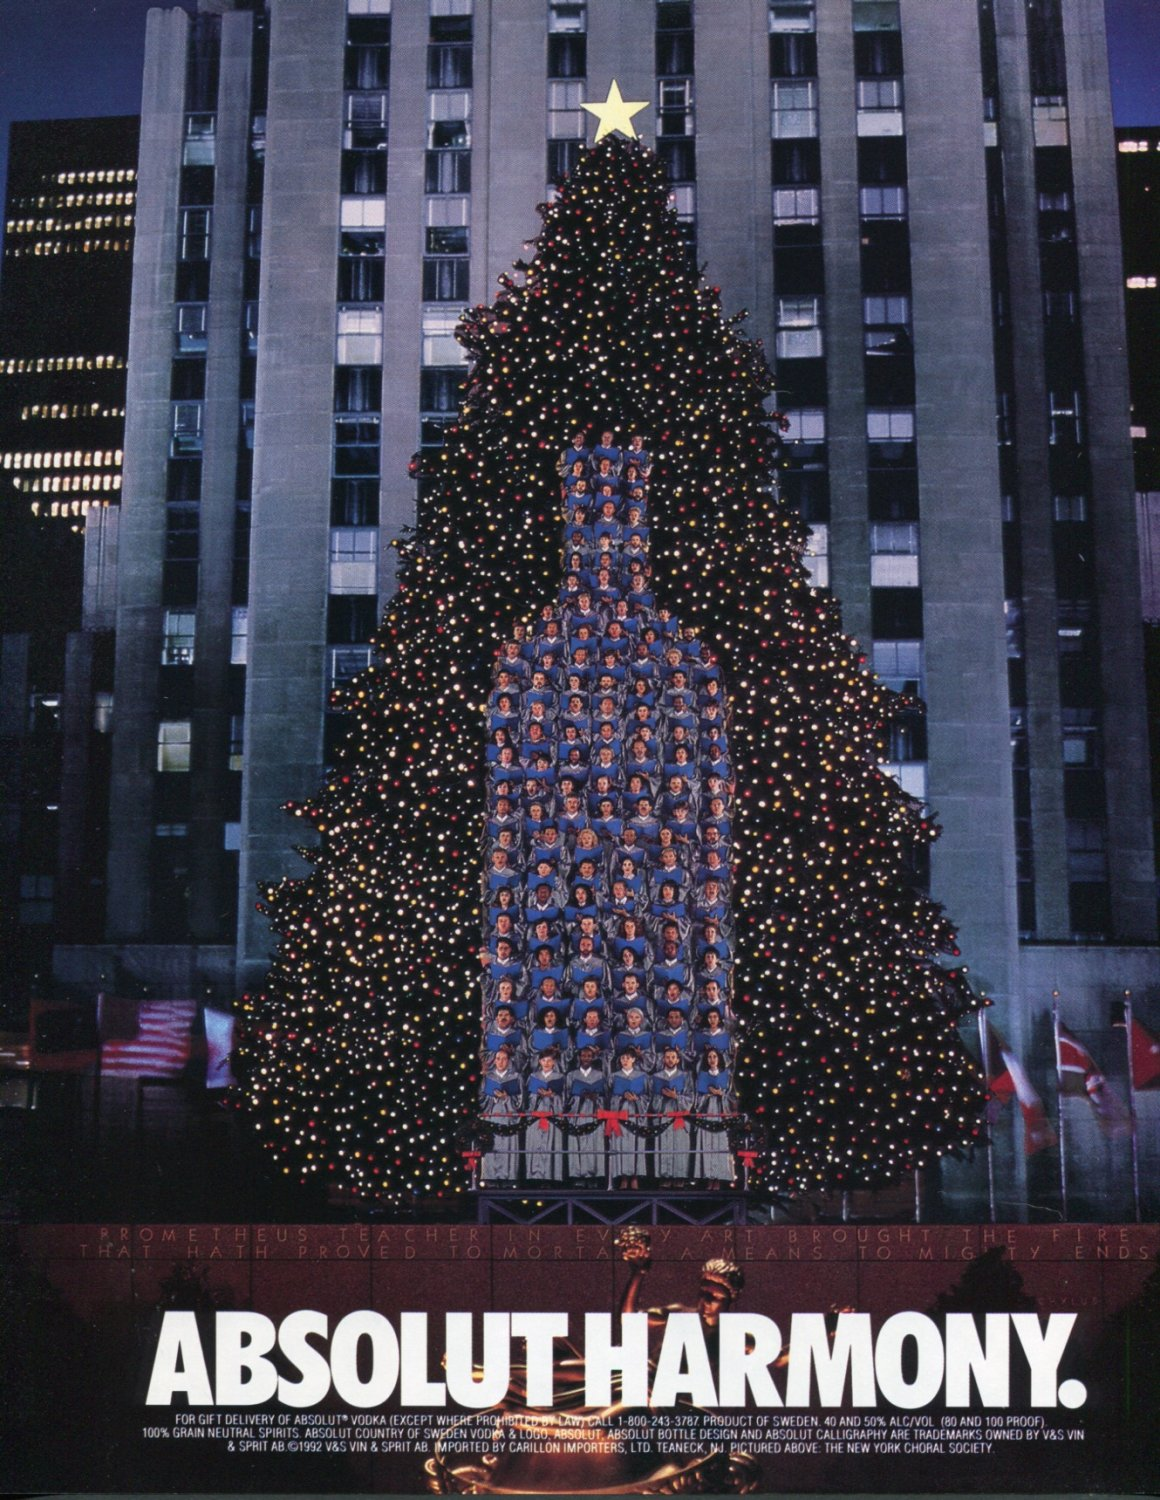 Absolut Harmony The New York Choral Society 1992 Absolut Vodka Ad Advert